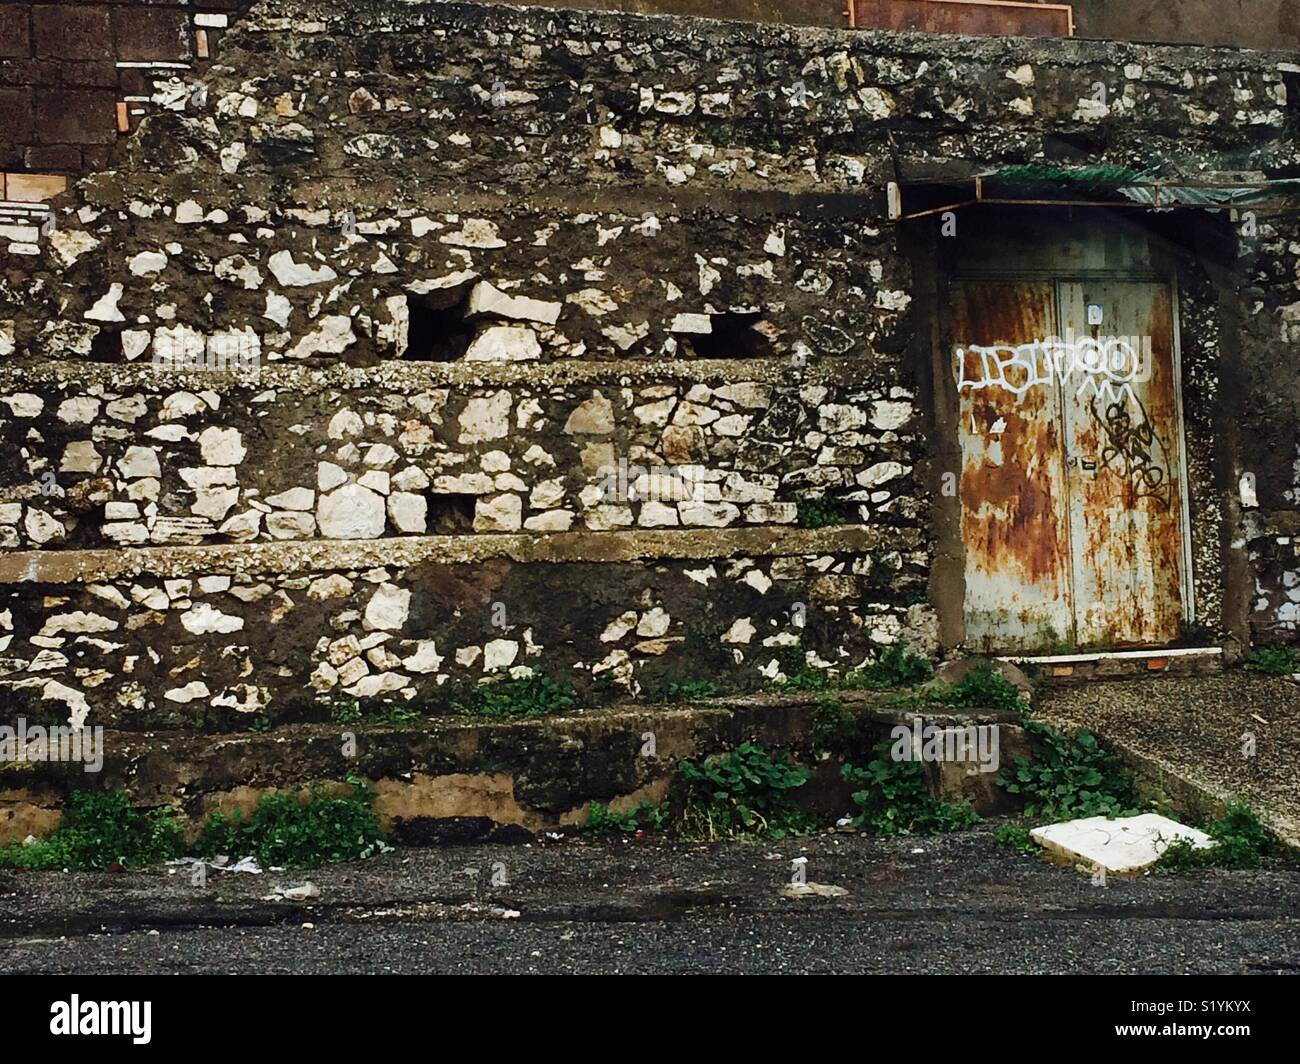 Old, ruined wall and door, suburban area - Stock Image